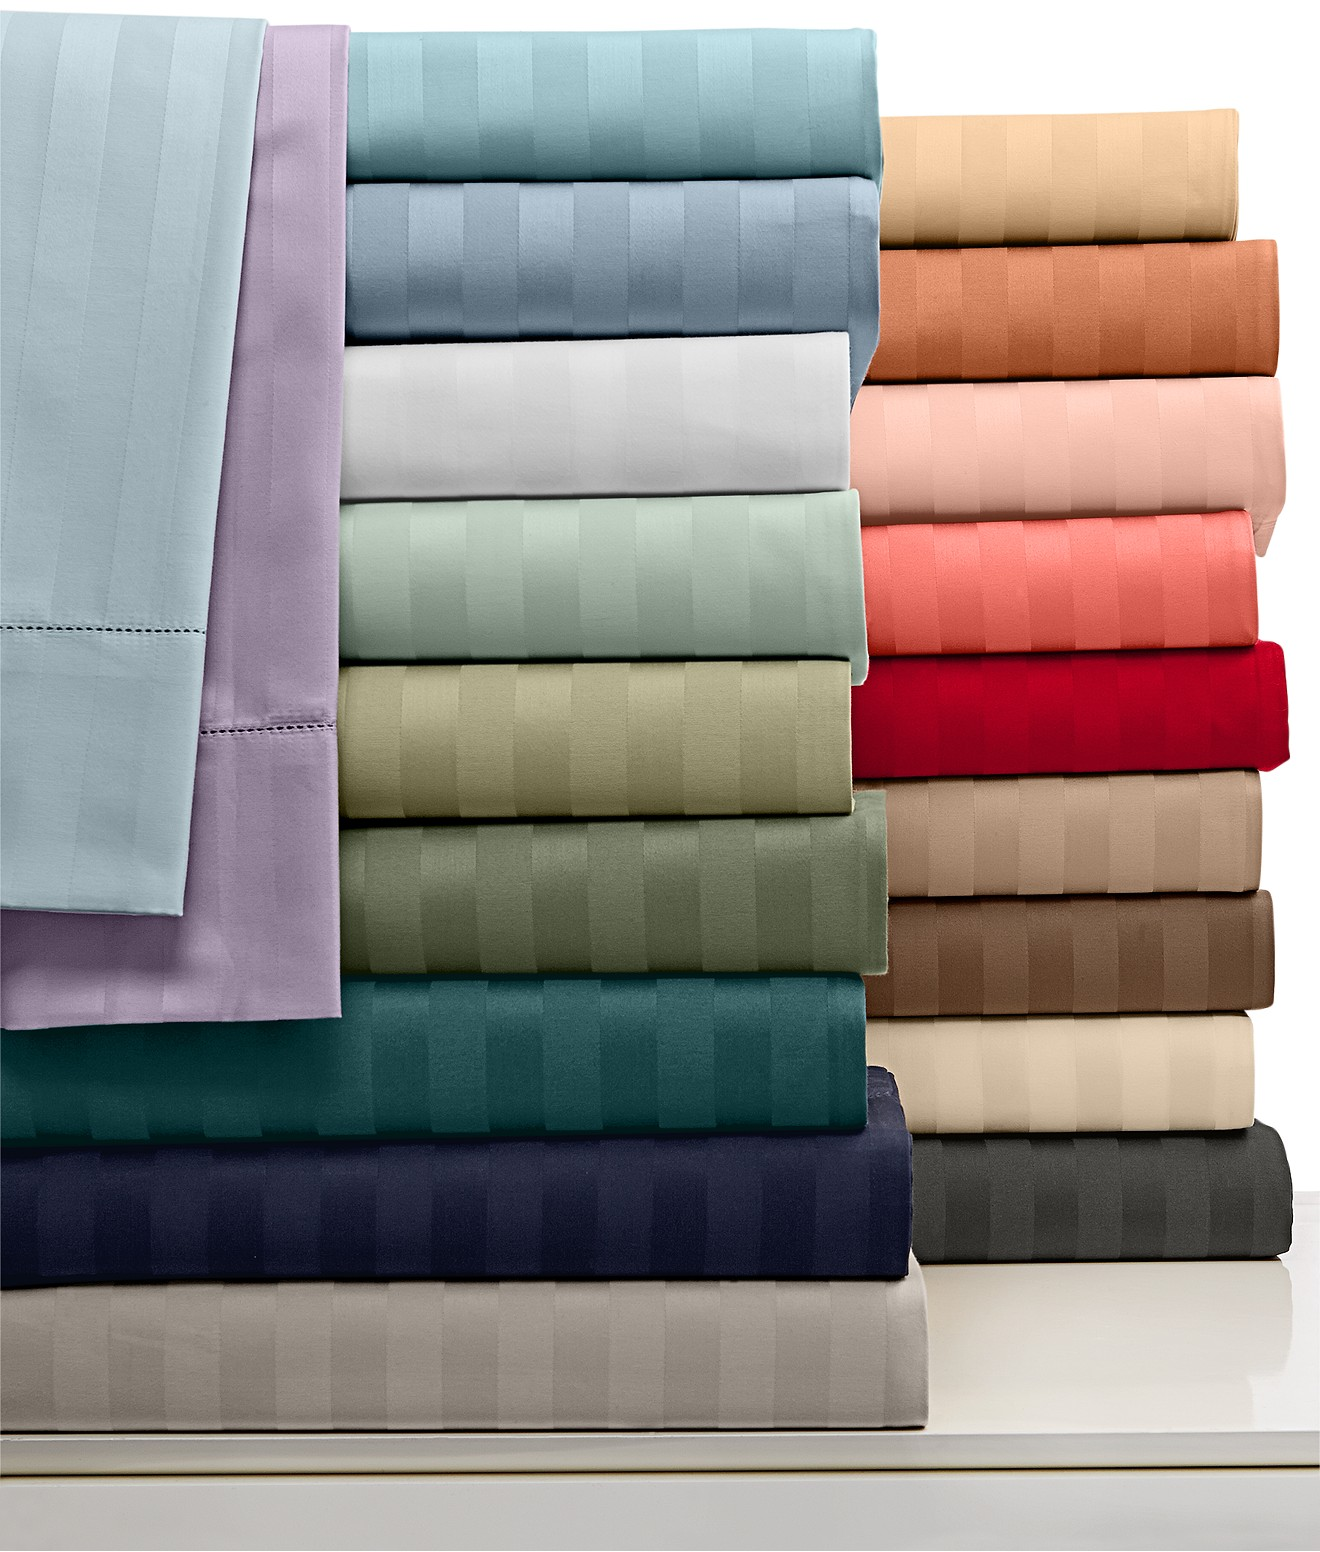 Charter Club Damask Stripe Wrinkle Resistant 500 Thread Count Pima Cotton Sheet Sets, Only at Macy's - Sheets - Bed & Bath - Macy's